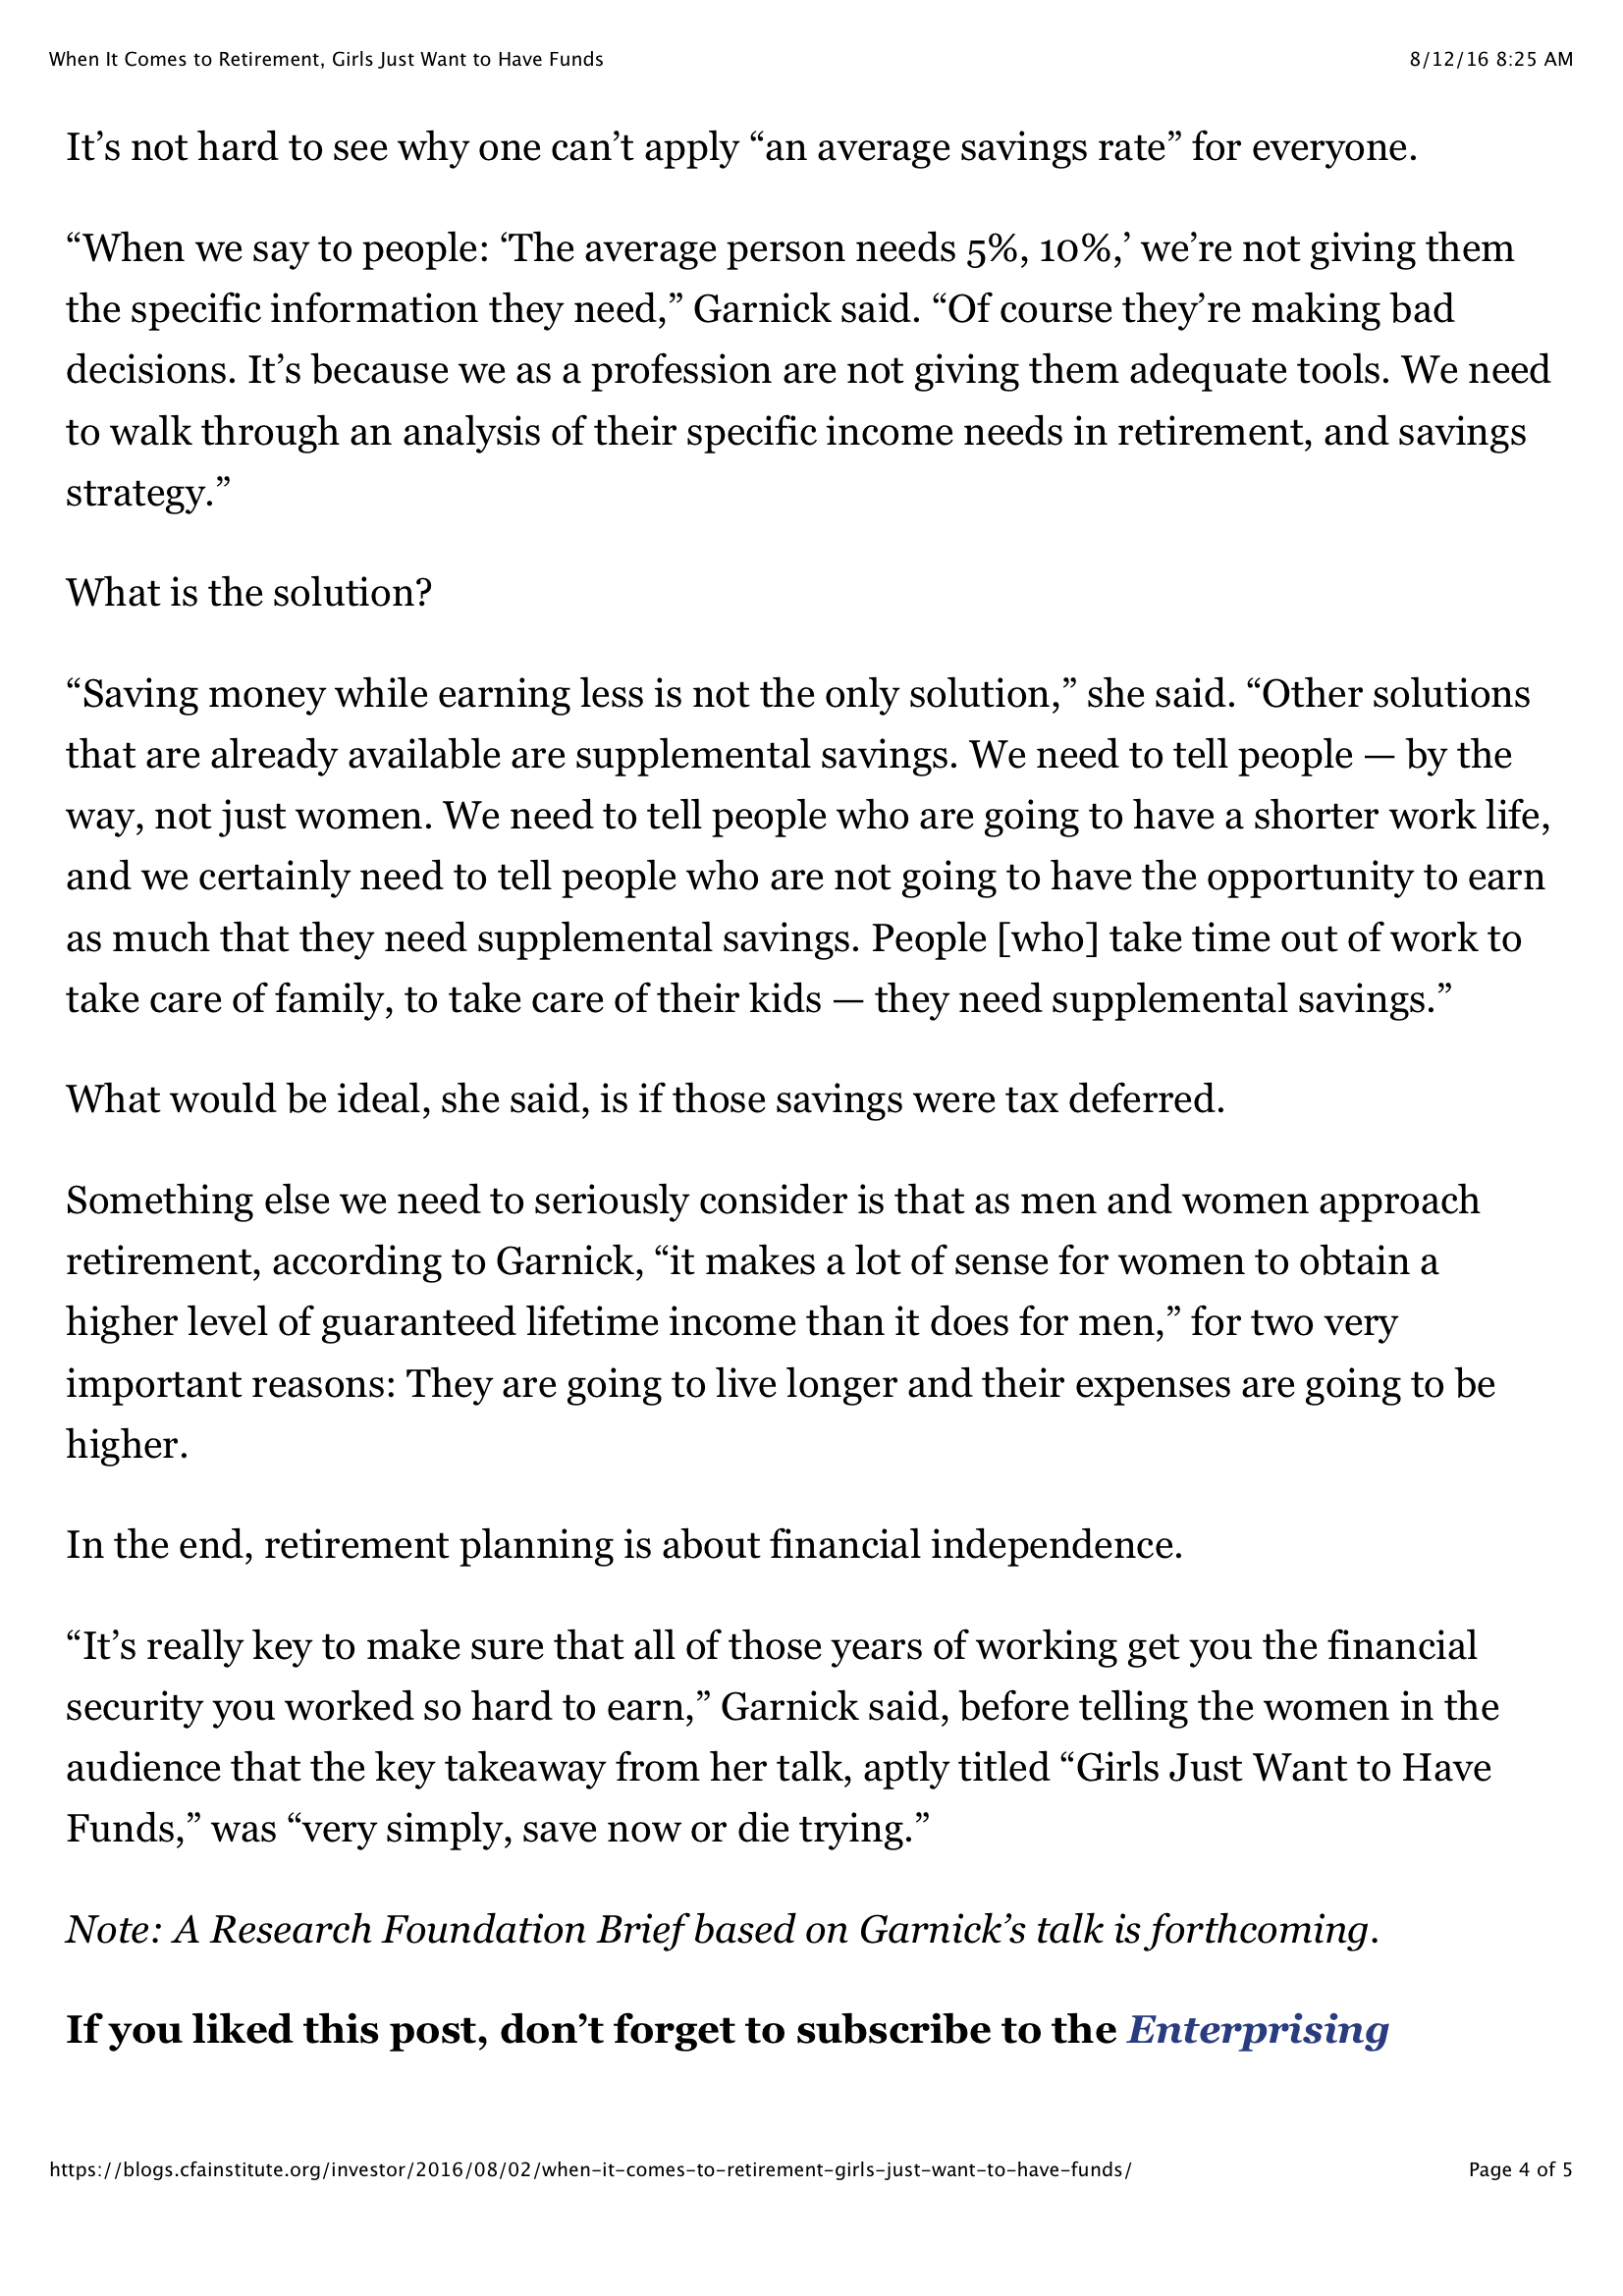 57_When It Comes to Retirement.-4